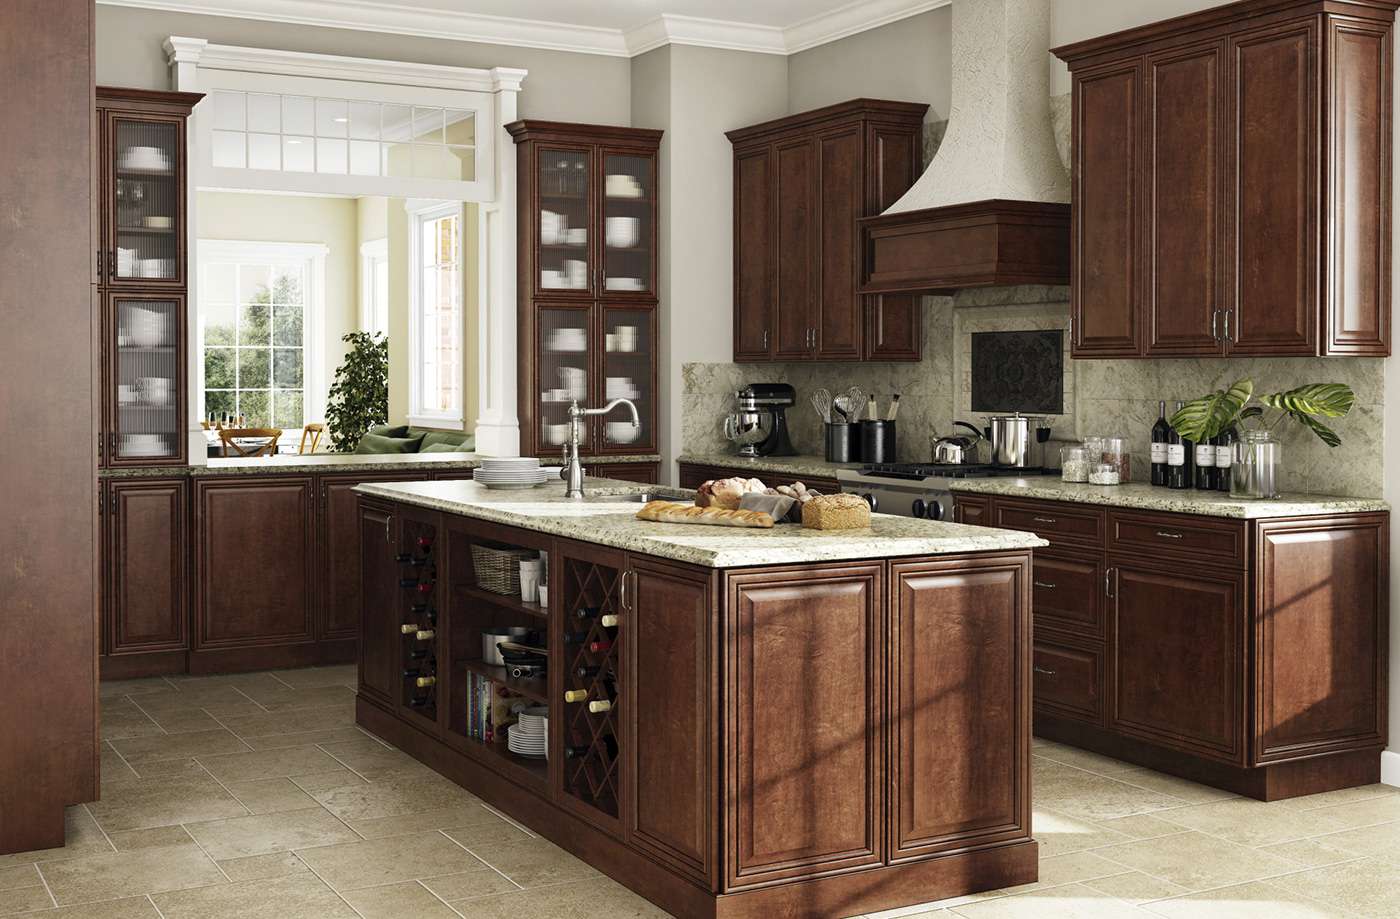 American Woodmark acquires cabinet manufacturer RSI Home ...